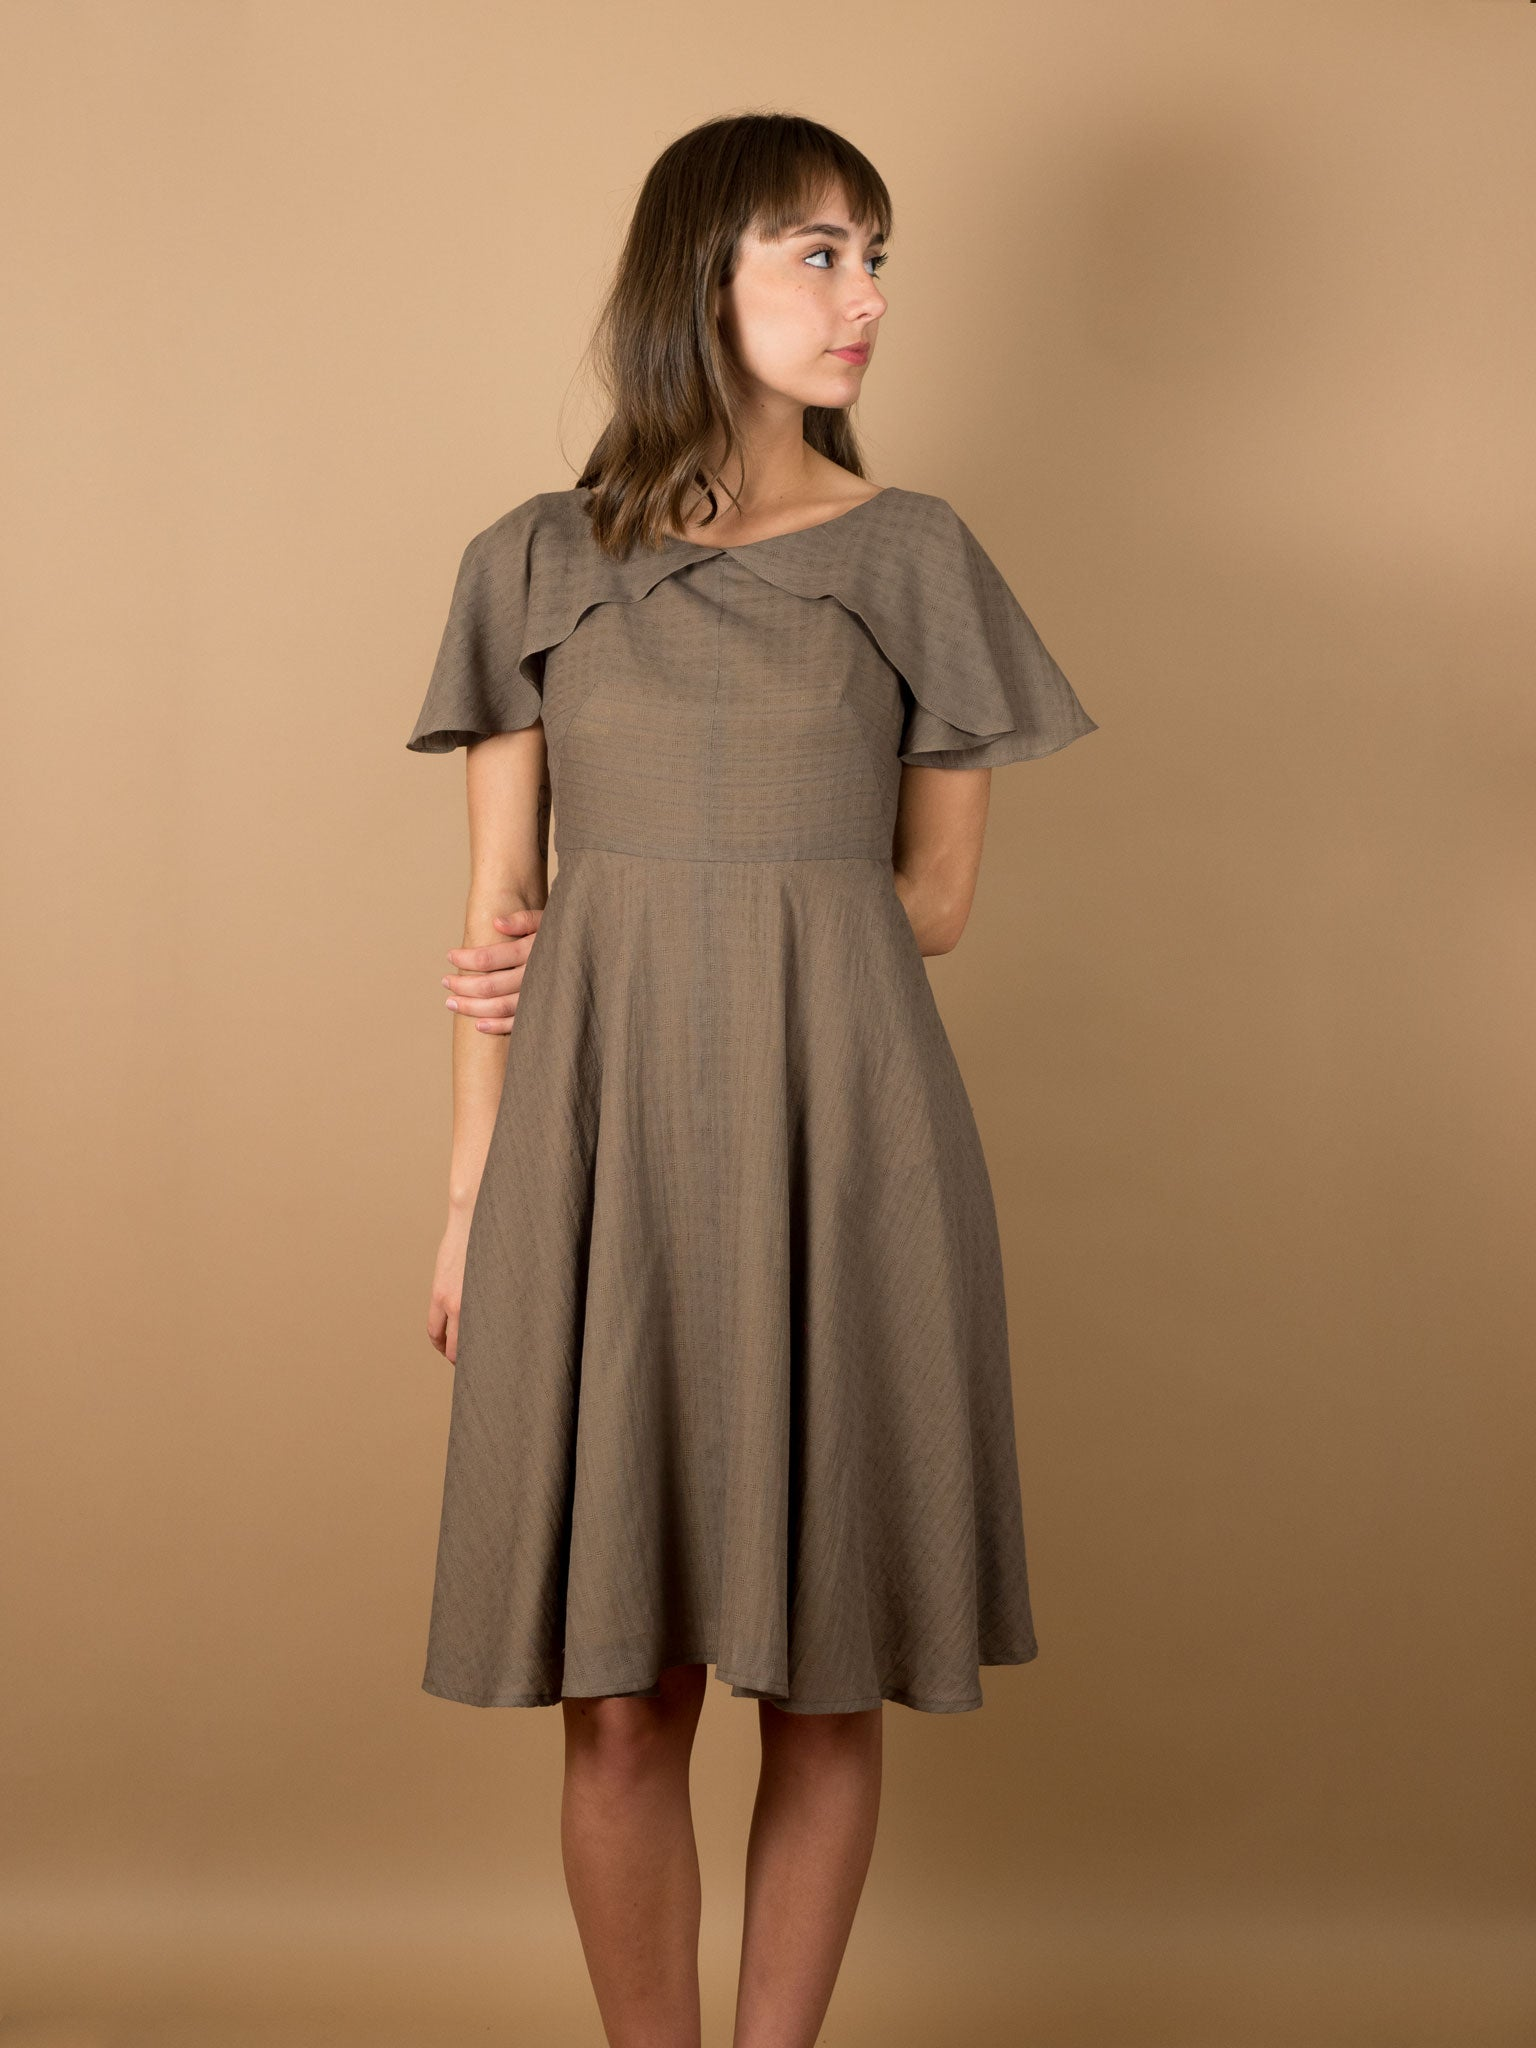 Darla Dress in Mocha Khadi